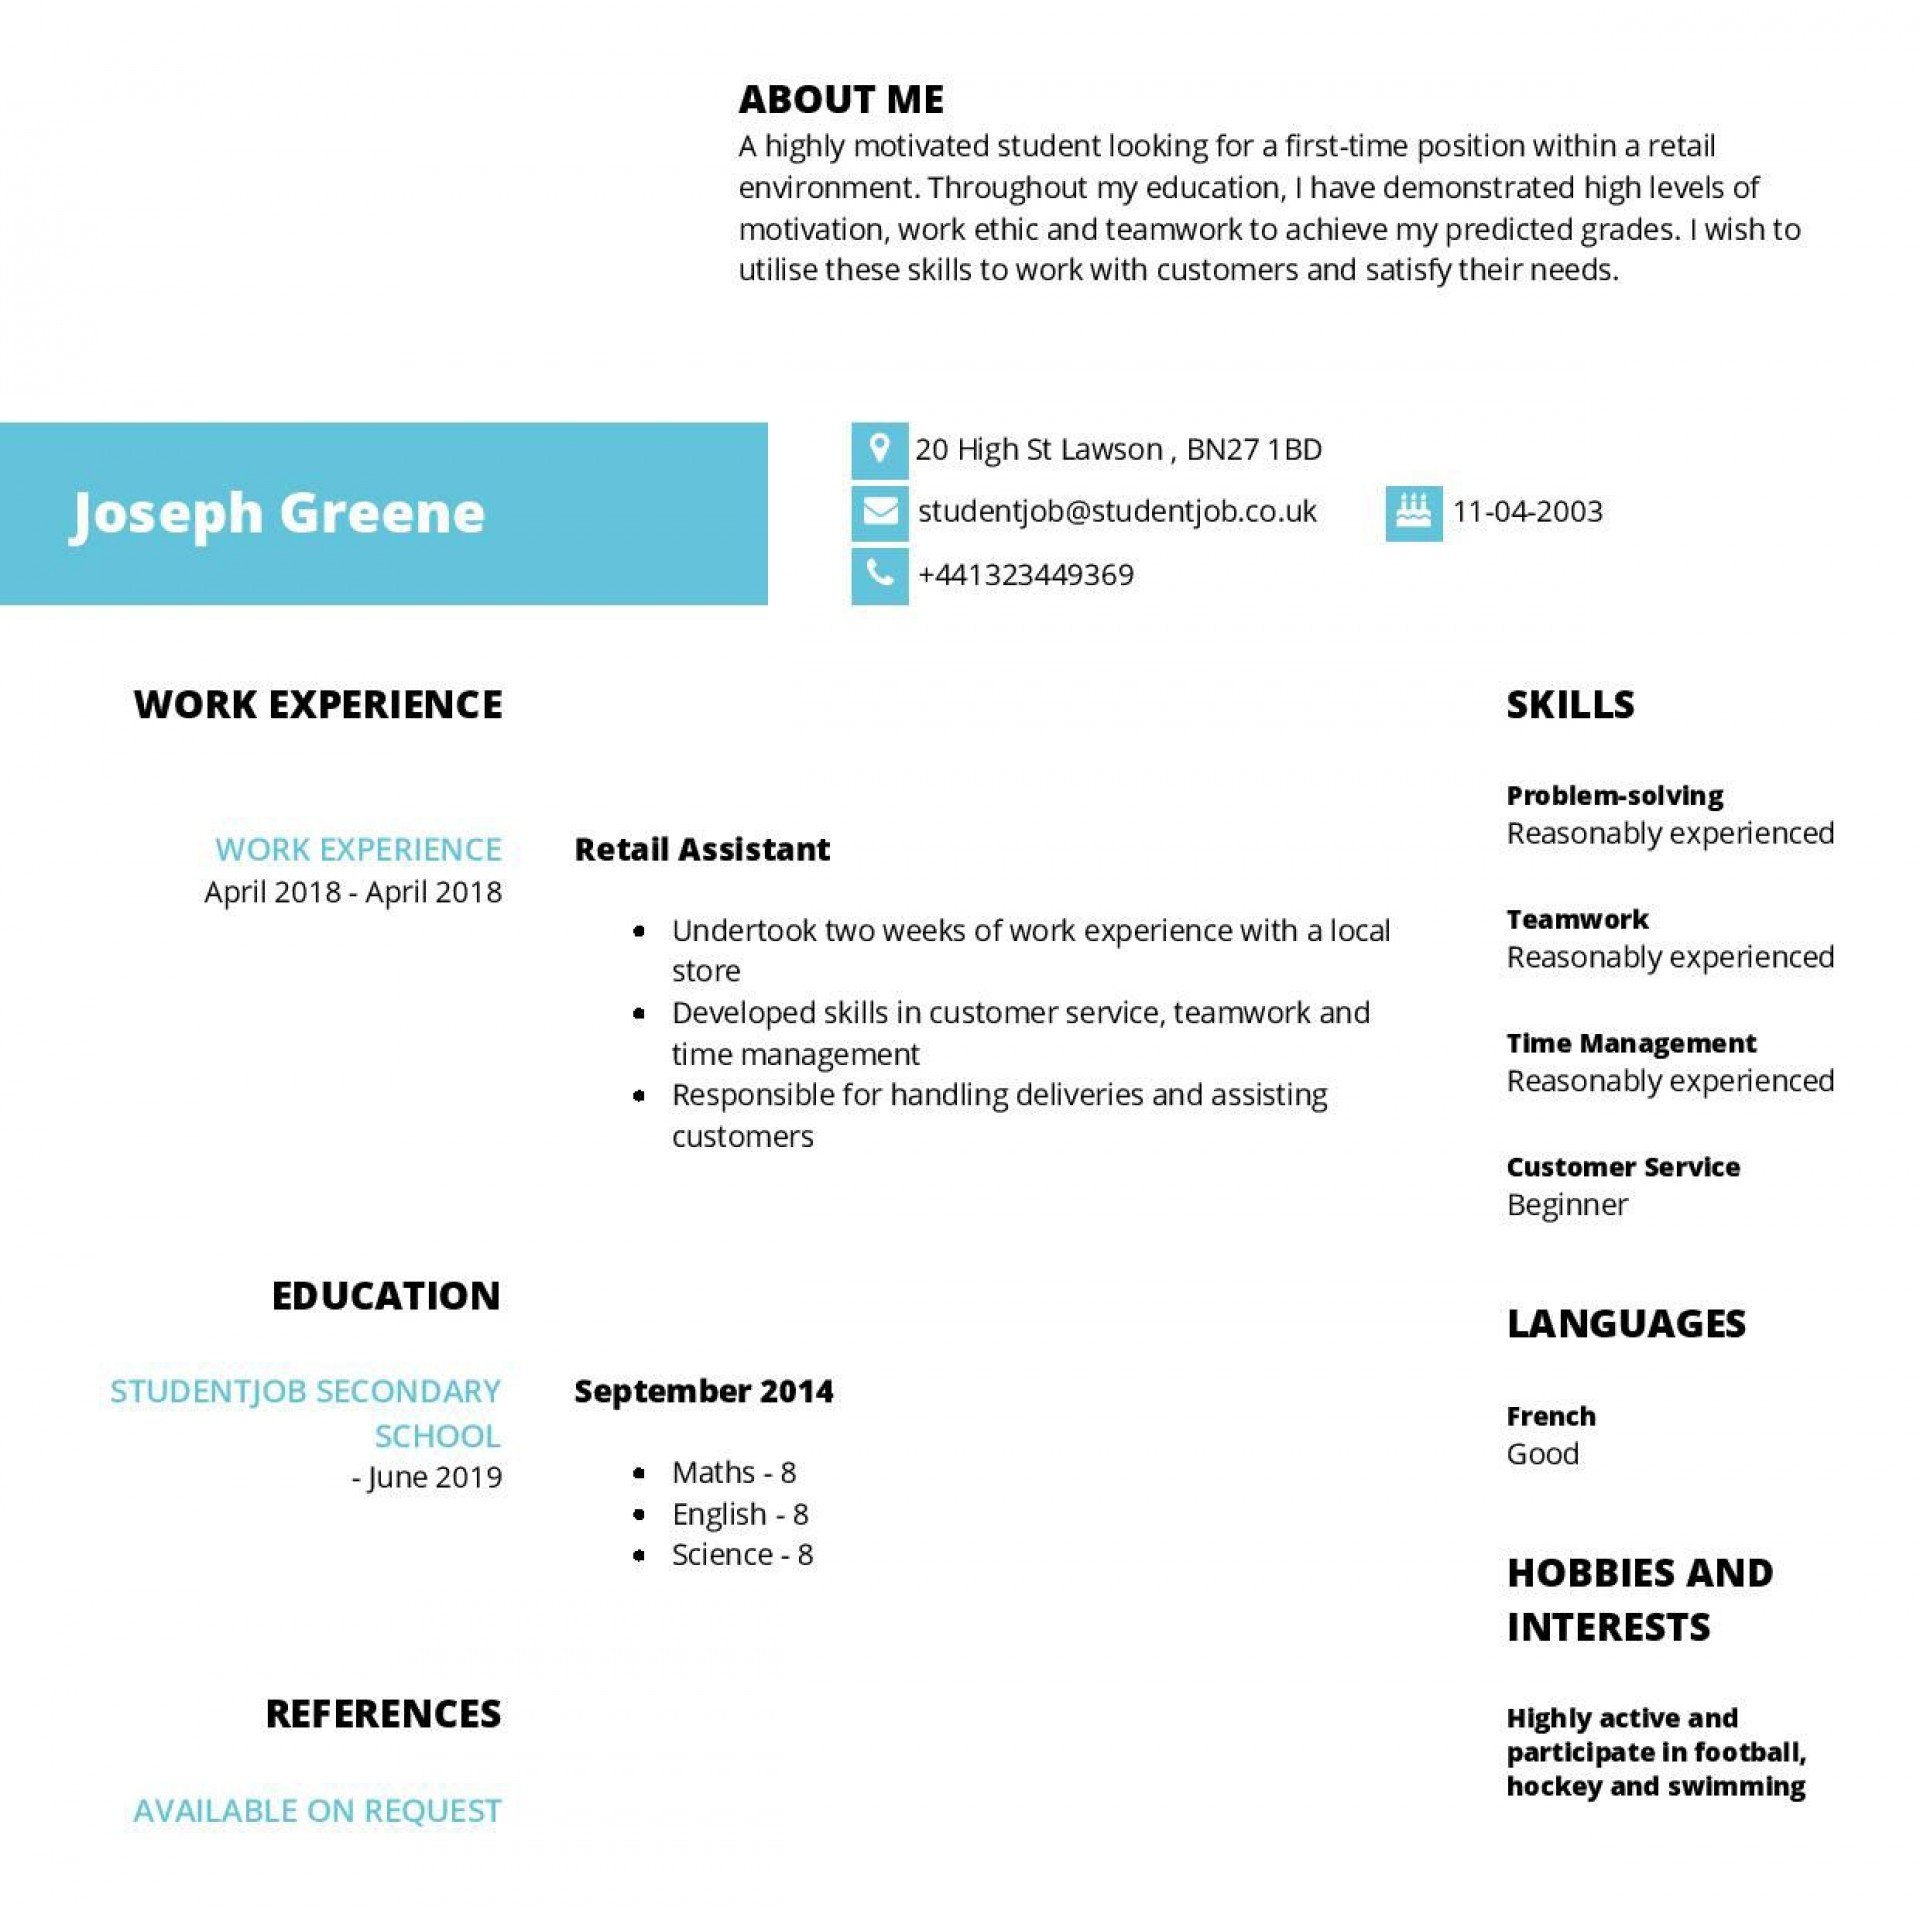 003 Phenomenal Resume Template For First Job Highest Clarity  Student Australia In High School Teenager1920